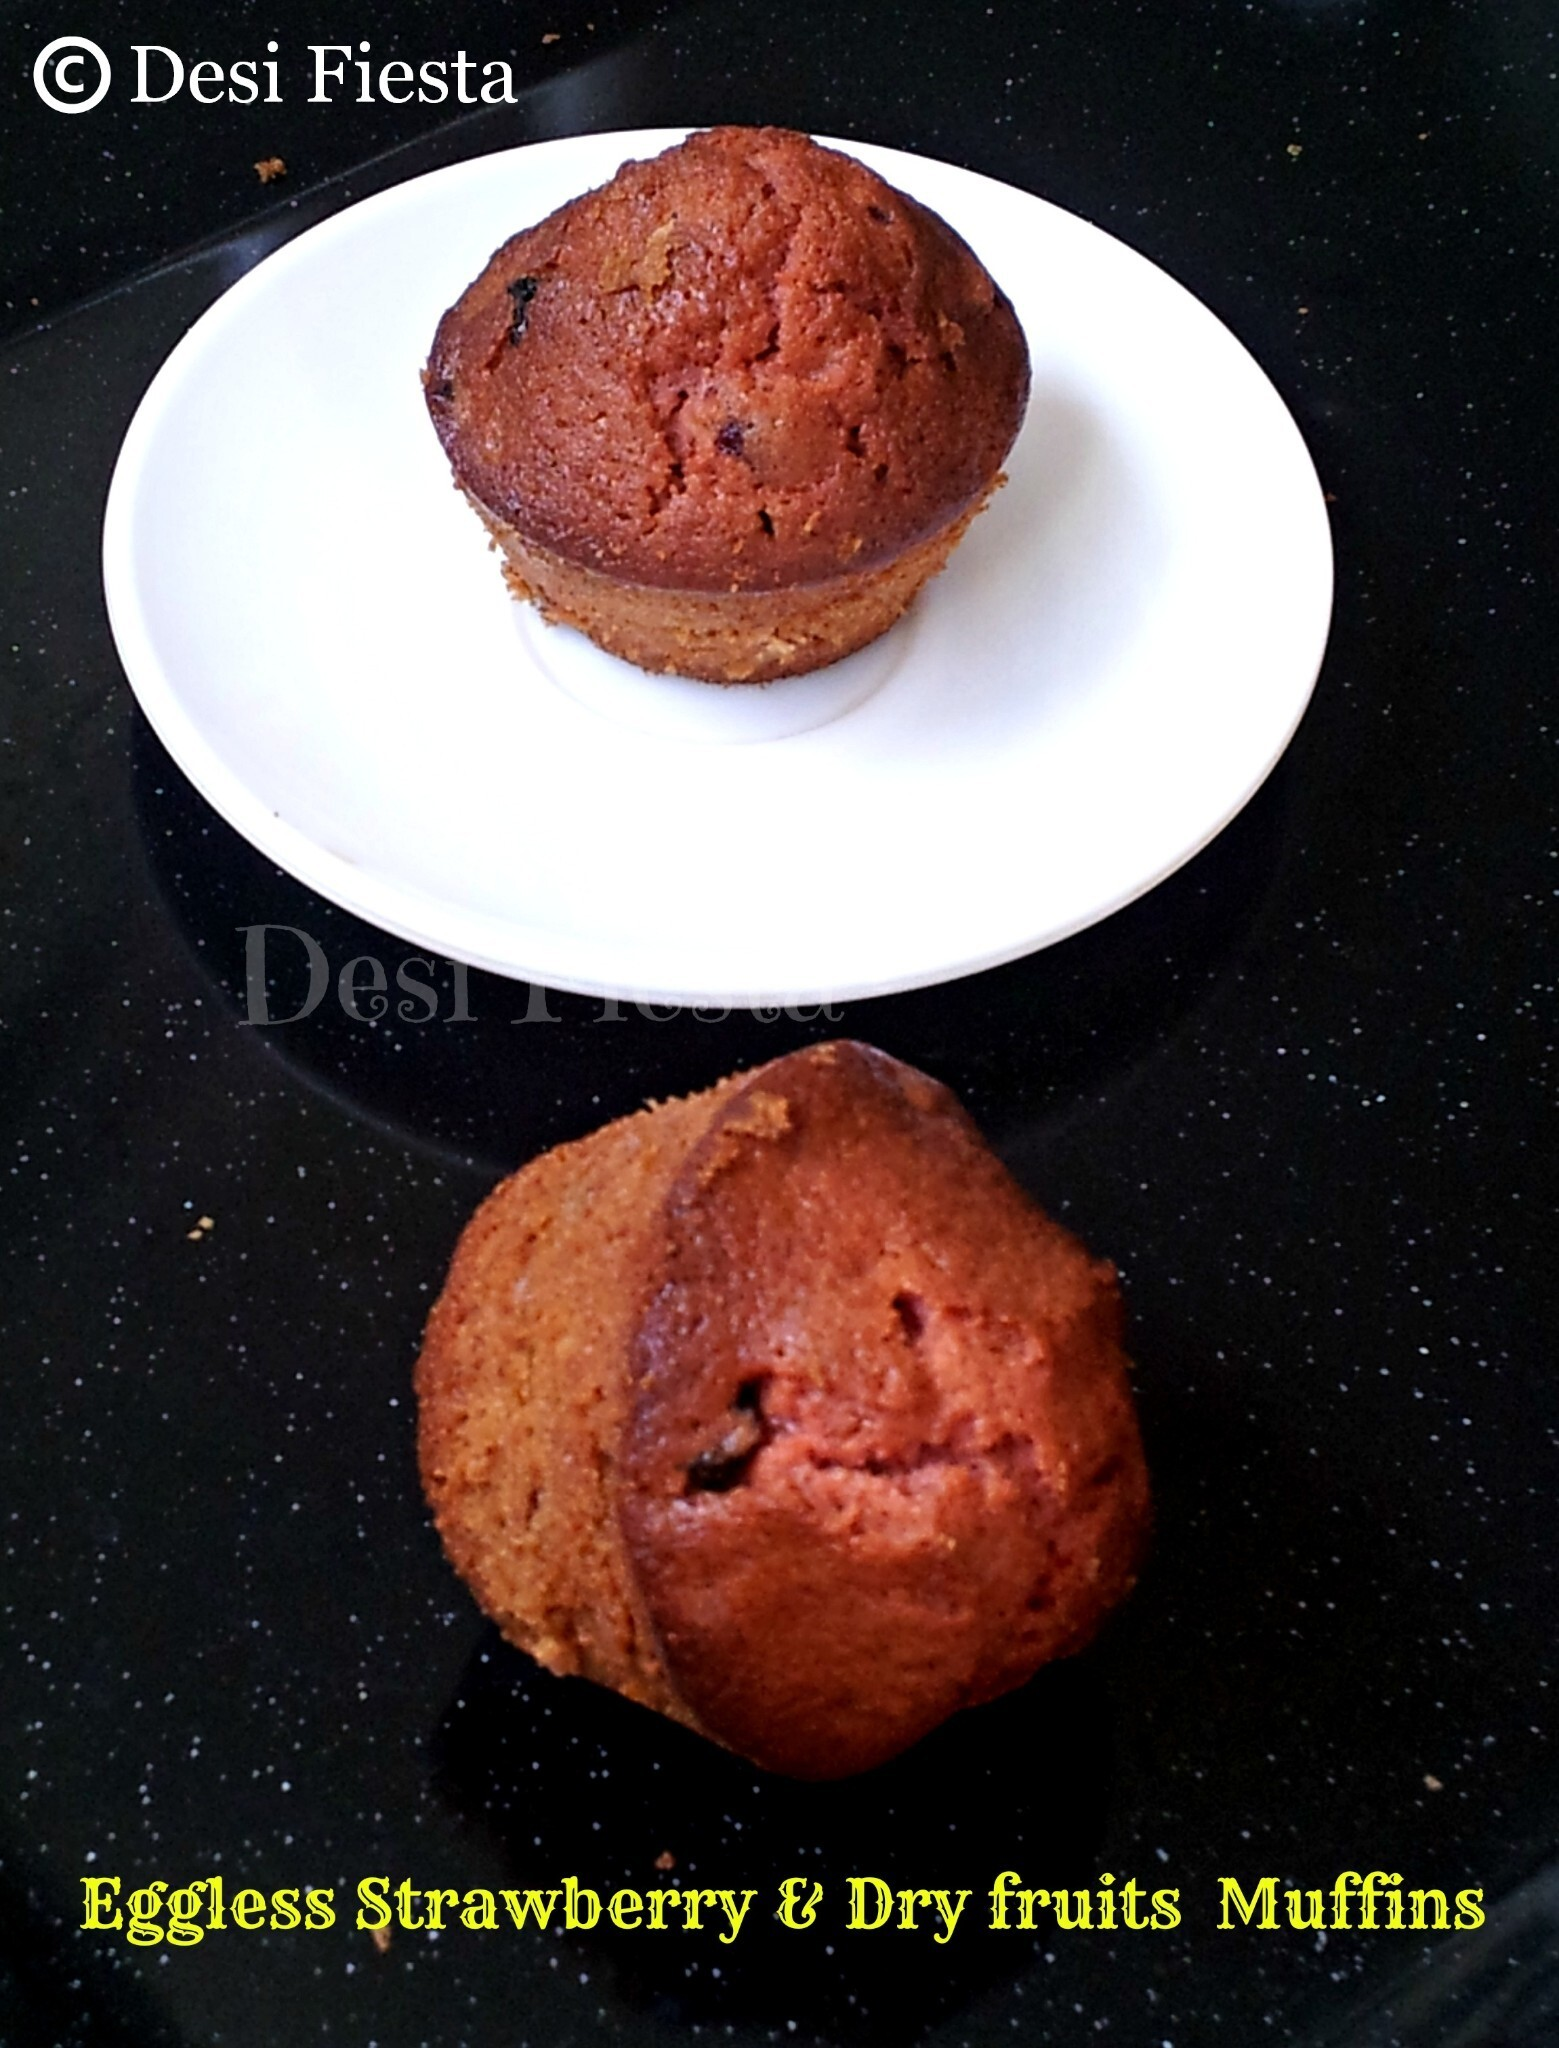 Eggless strawberry & dry fruits muffins (Come on - Let cook buddies) Entry 61